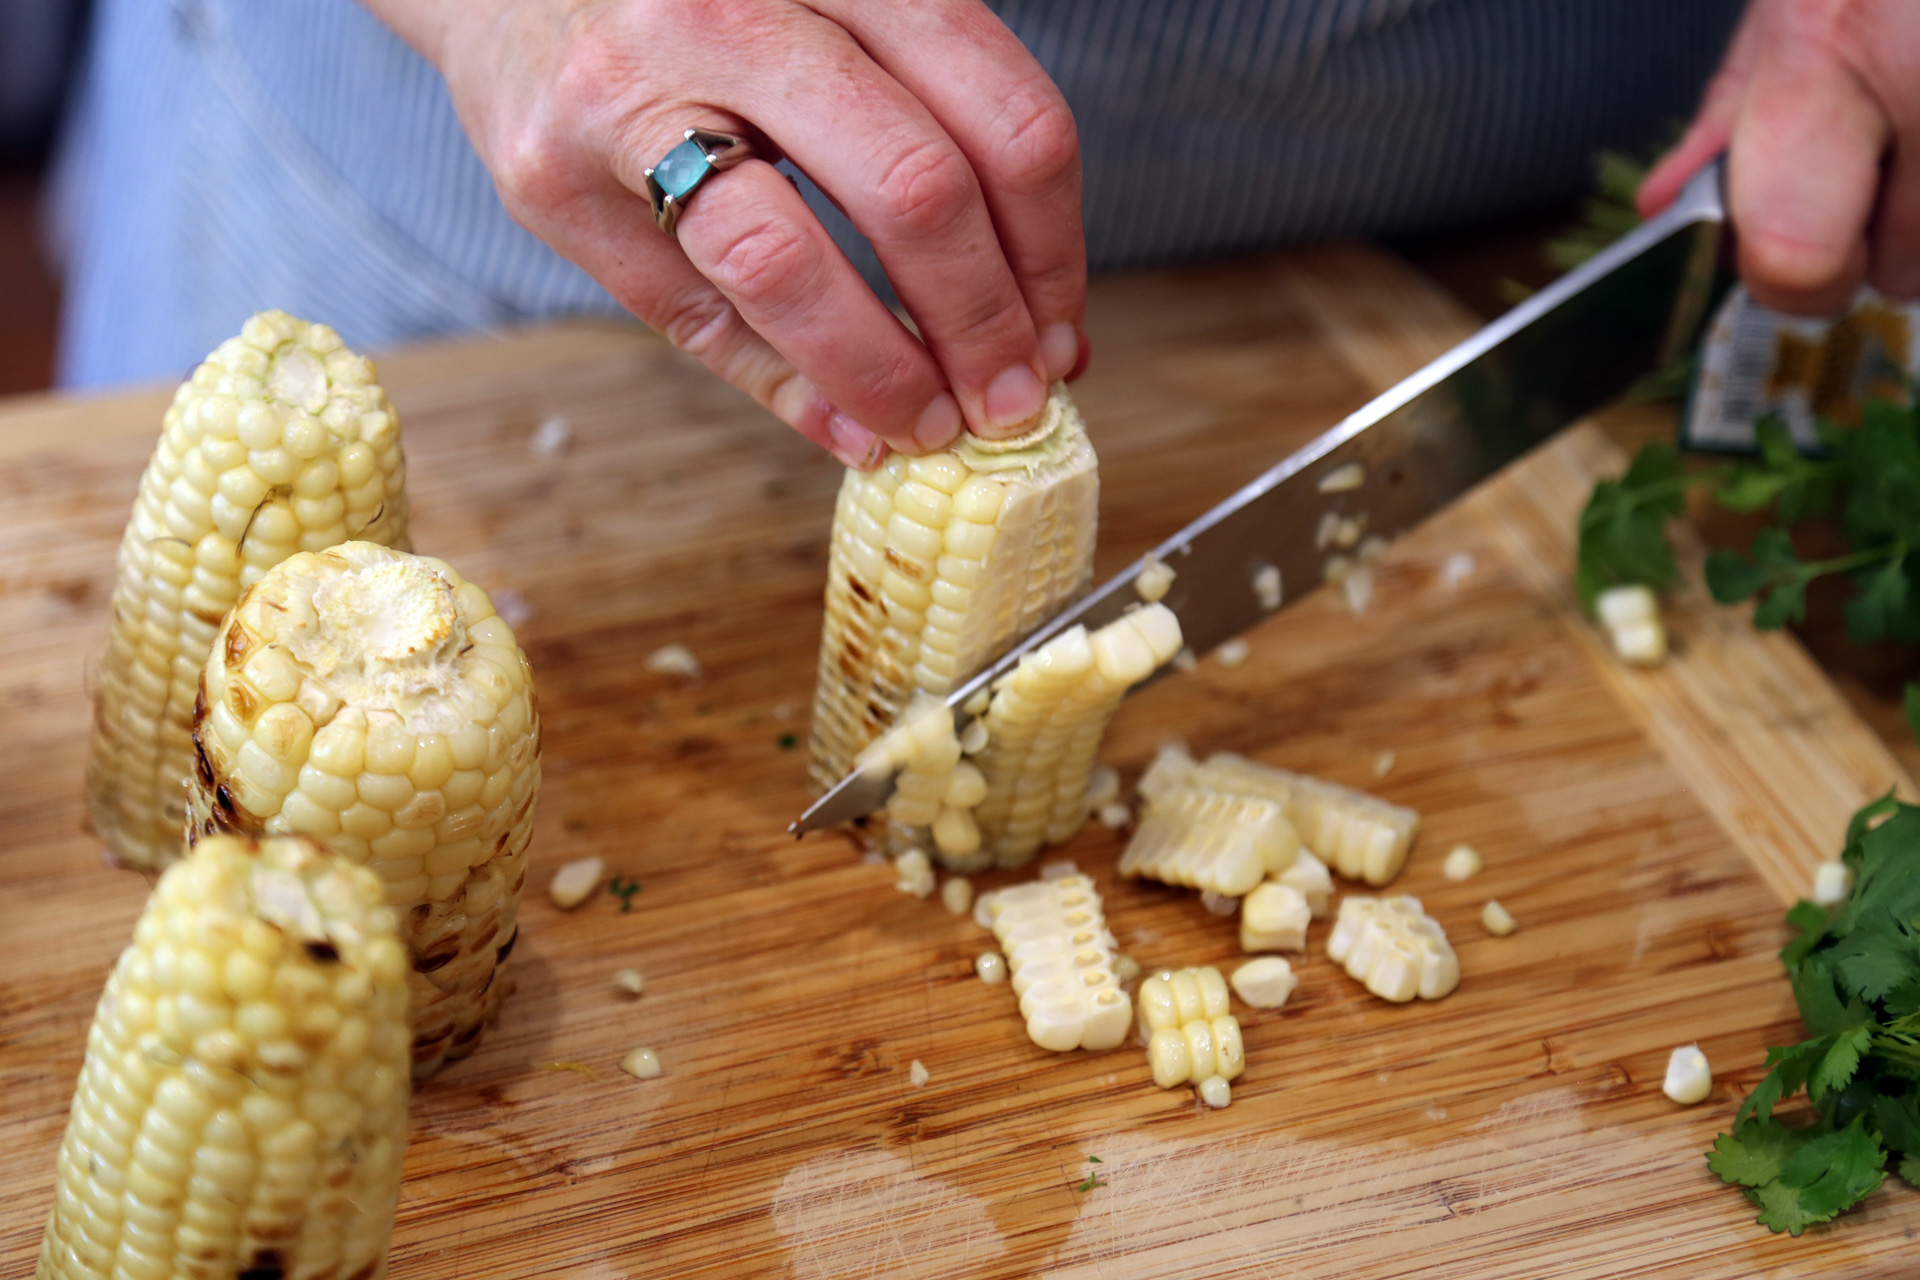 Transfer to a cutting board. Cut the kernels from the corn and place in a shallow serving bowl.